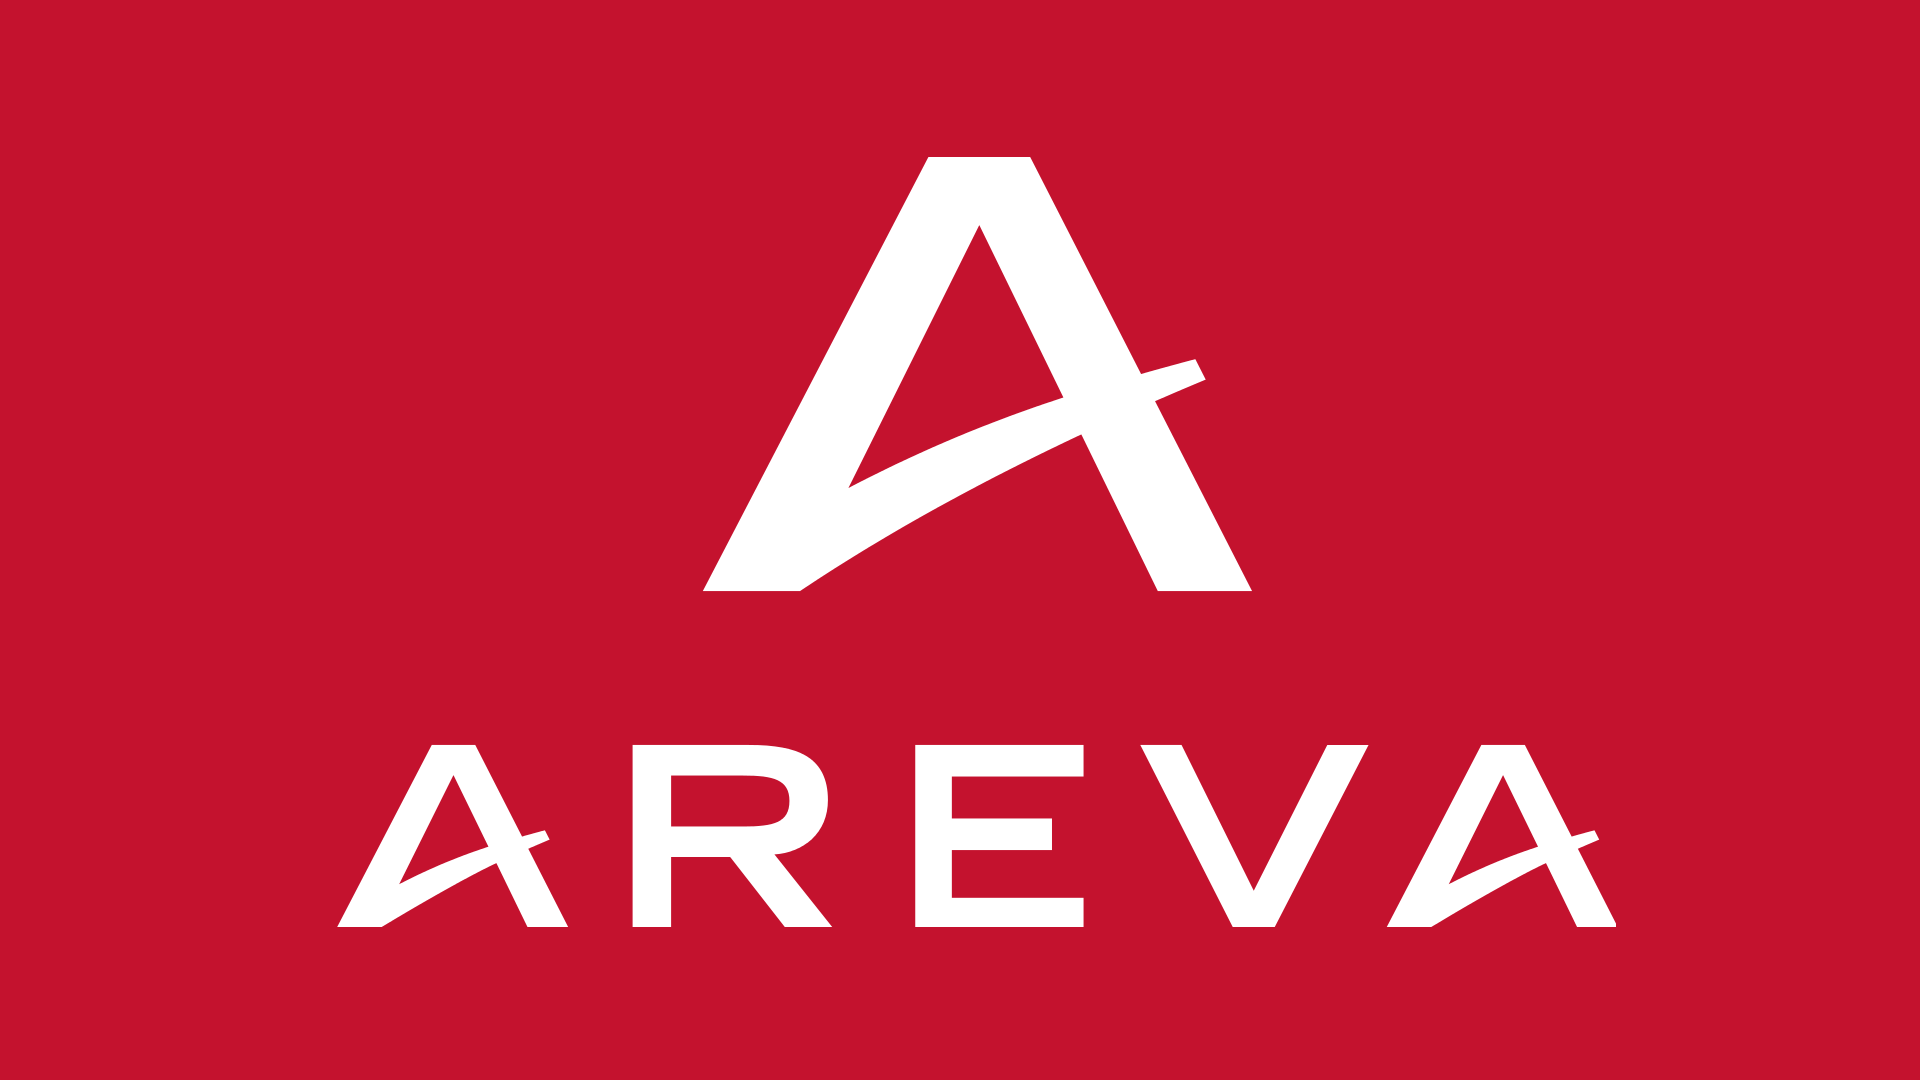 Areva Vector PNG - 116219